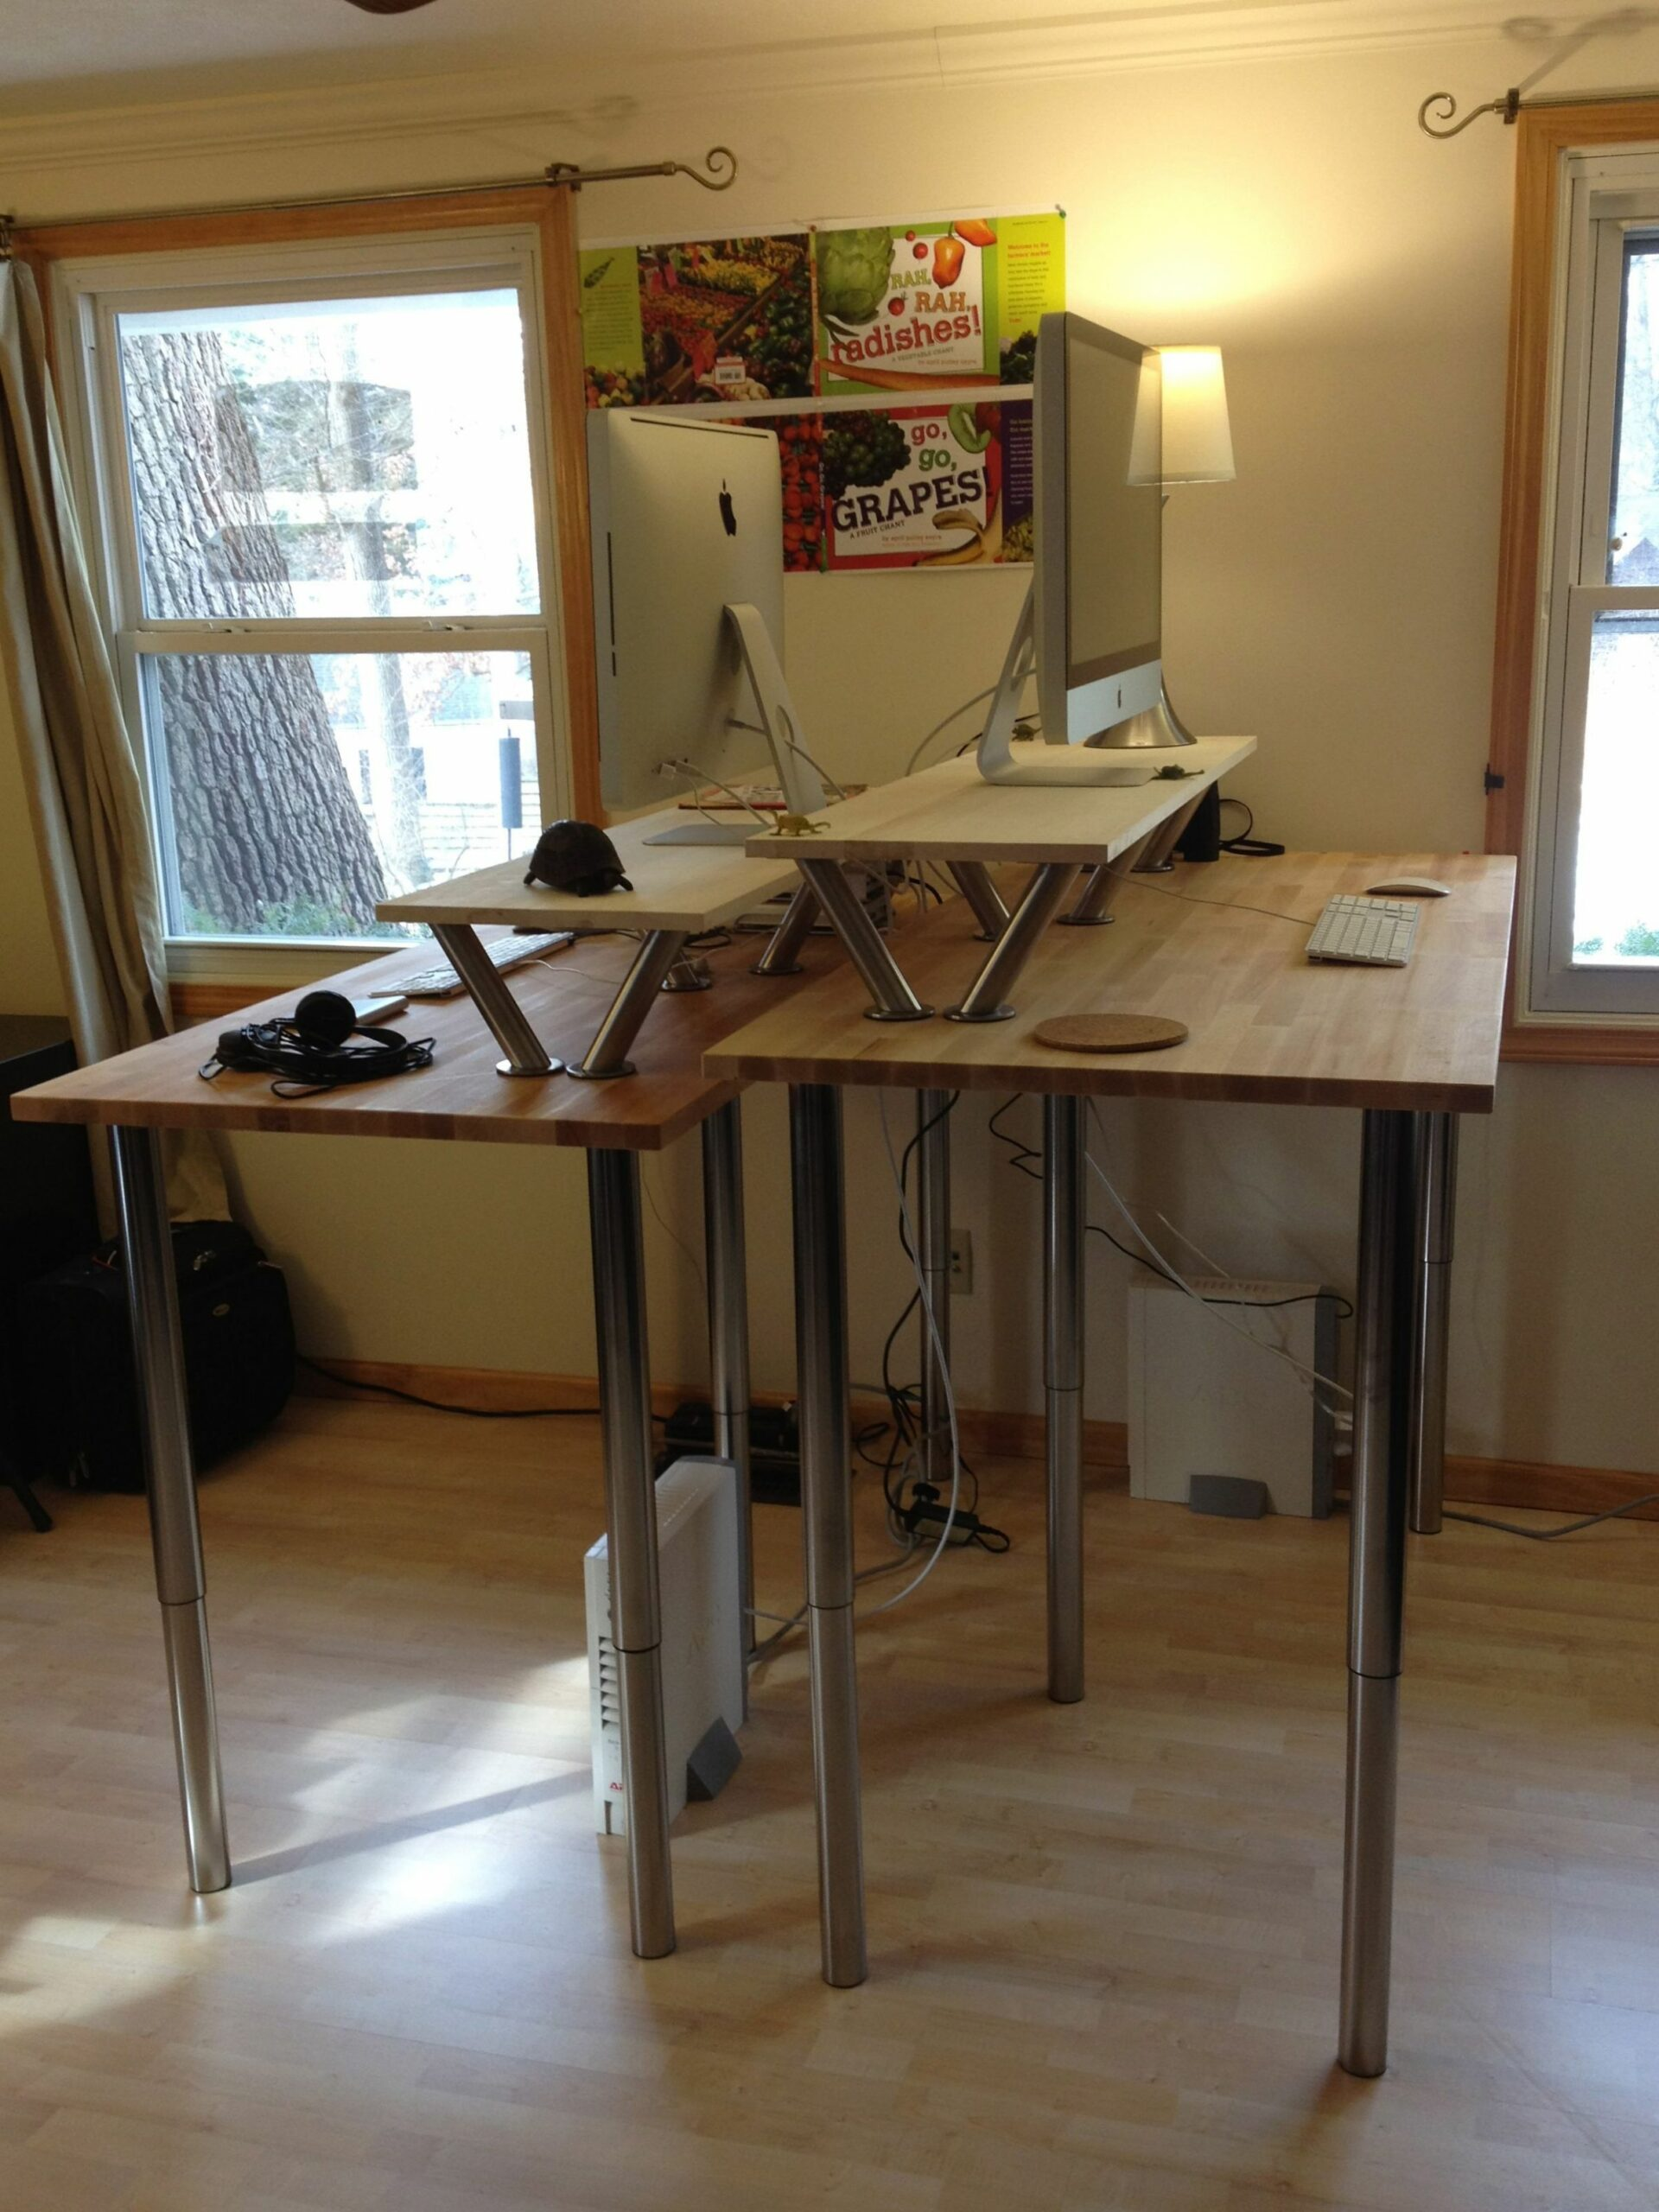 All Rise or A Standing Ovation | Diy standing desk - home office ideas with standing desk